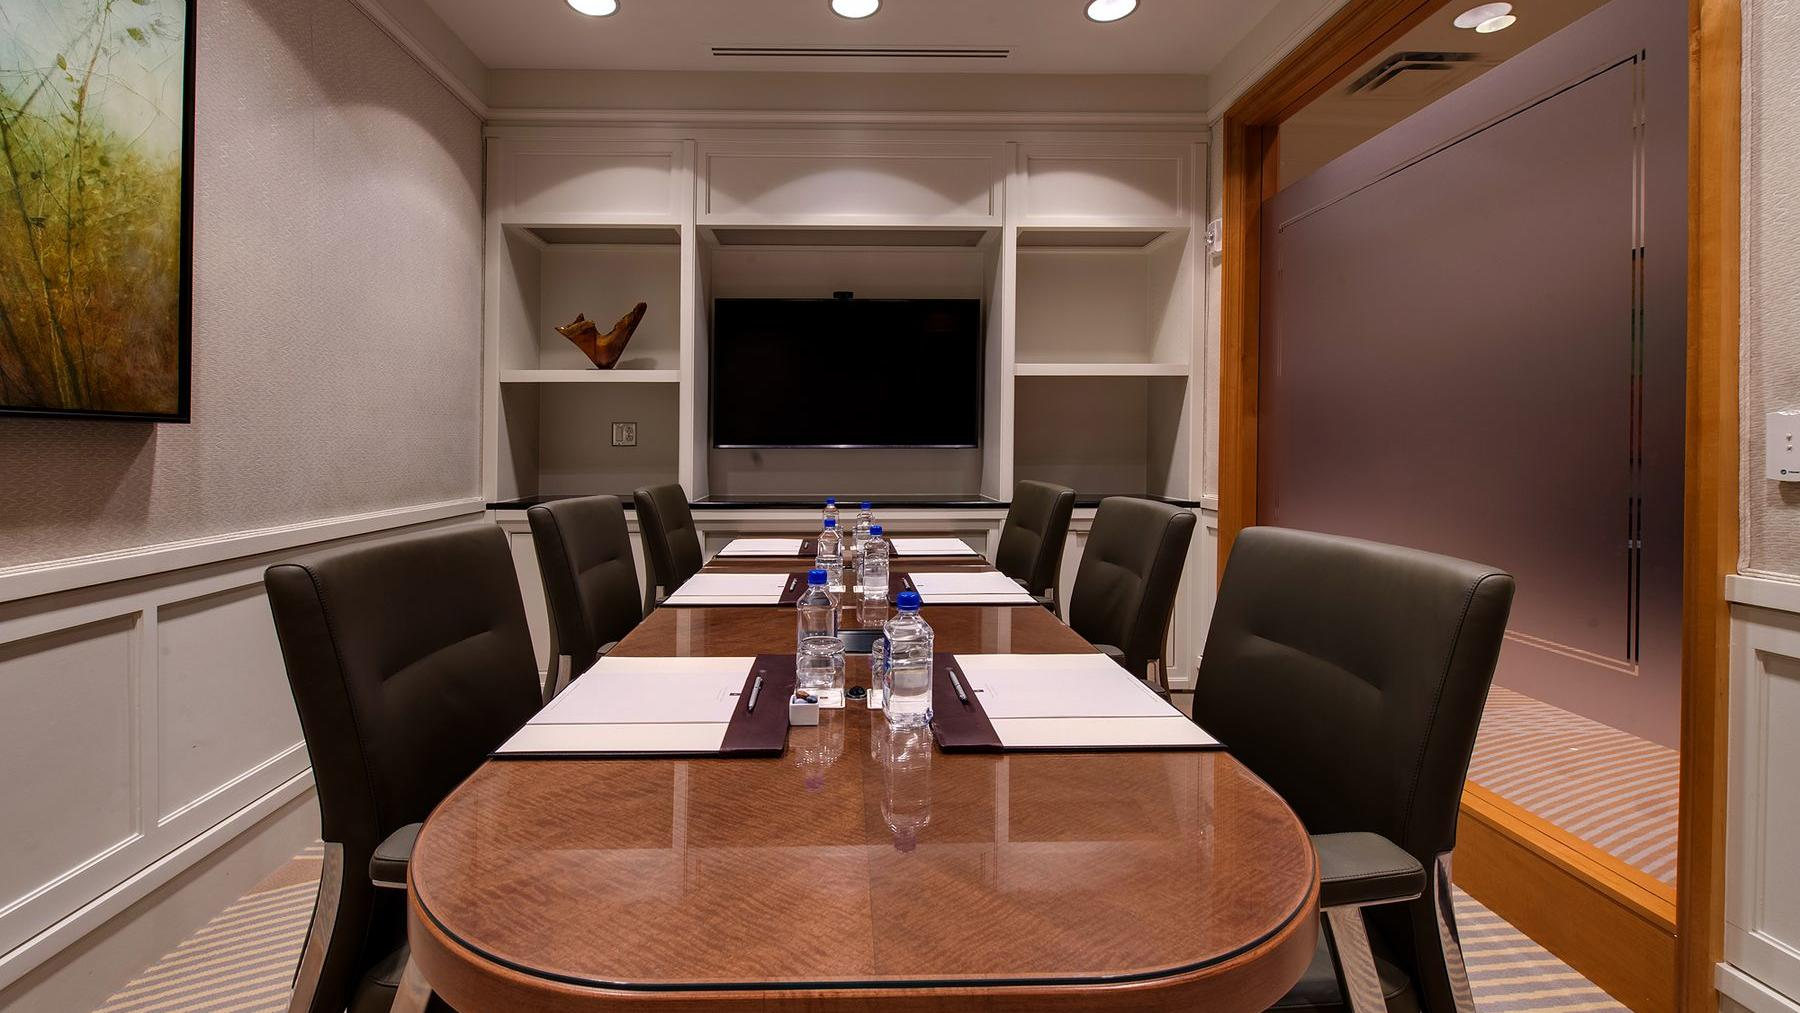 conference room with long table and black chairs